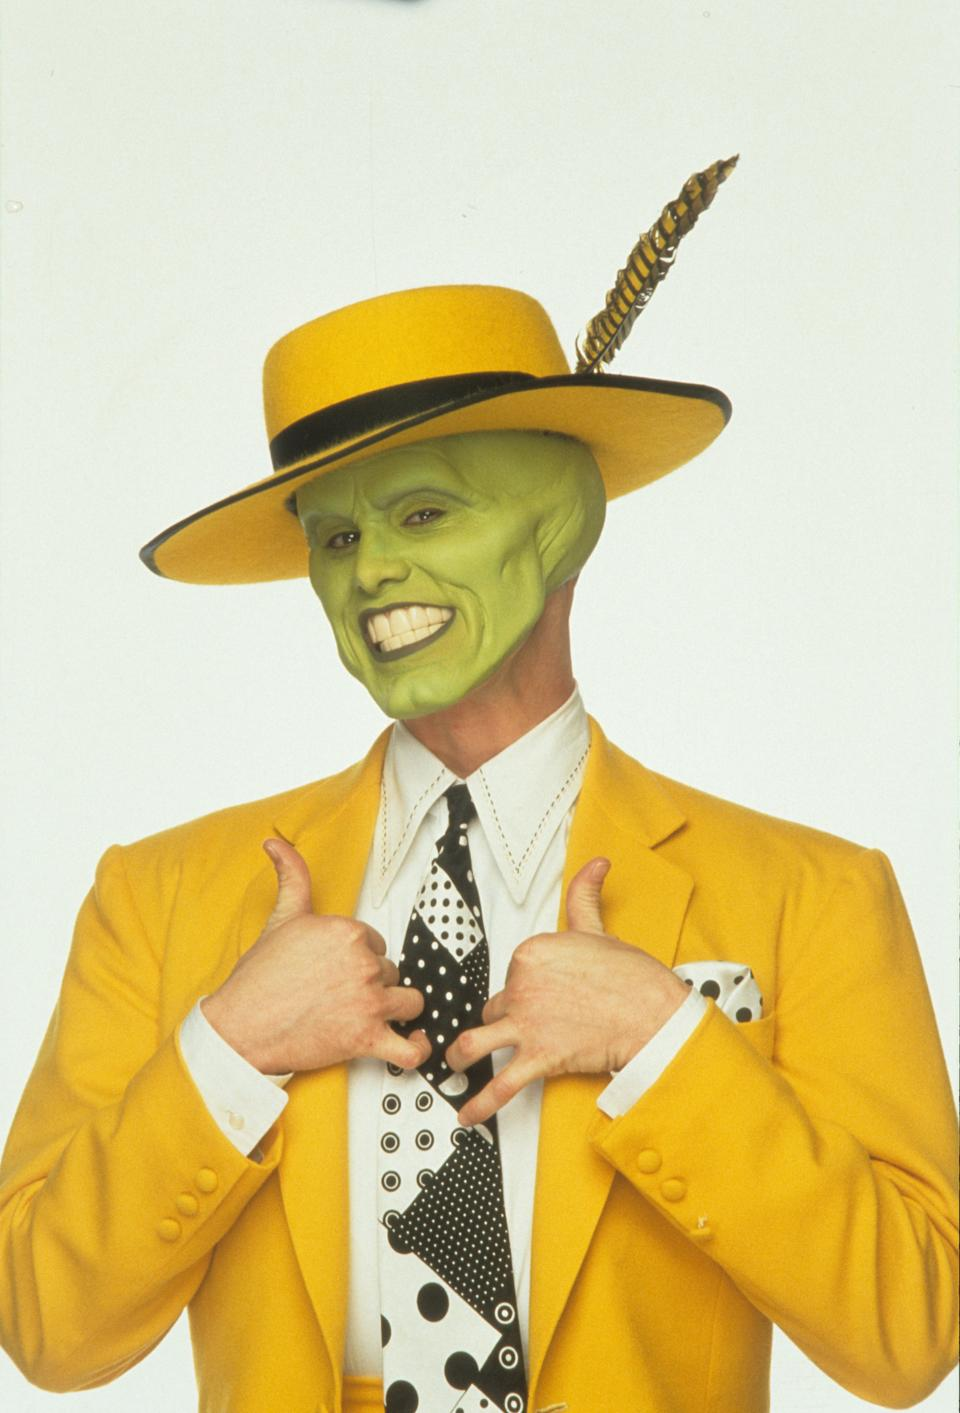 Jim Carrey publicity portrait for the film 'The Mask', 1994. (Photo by New Line Cinema/Getty Images)